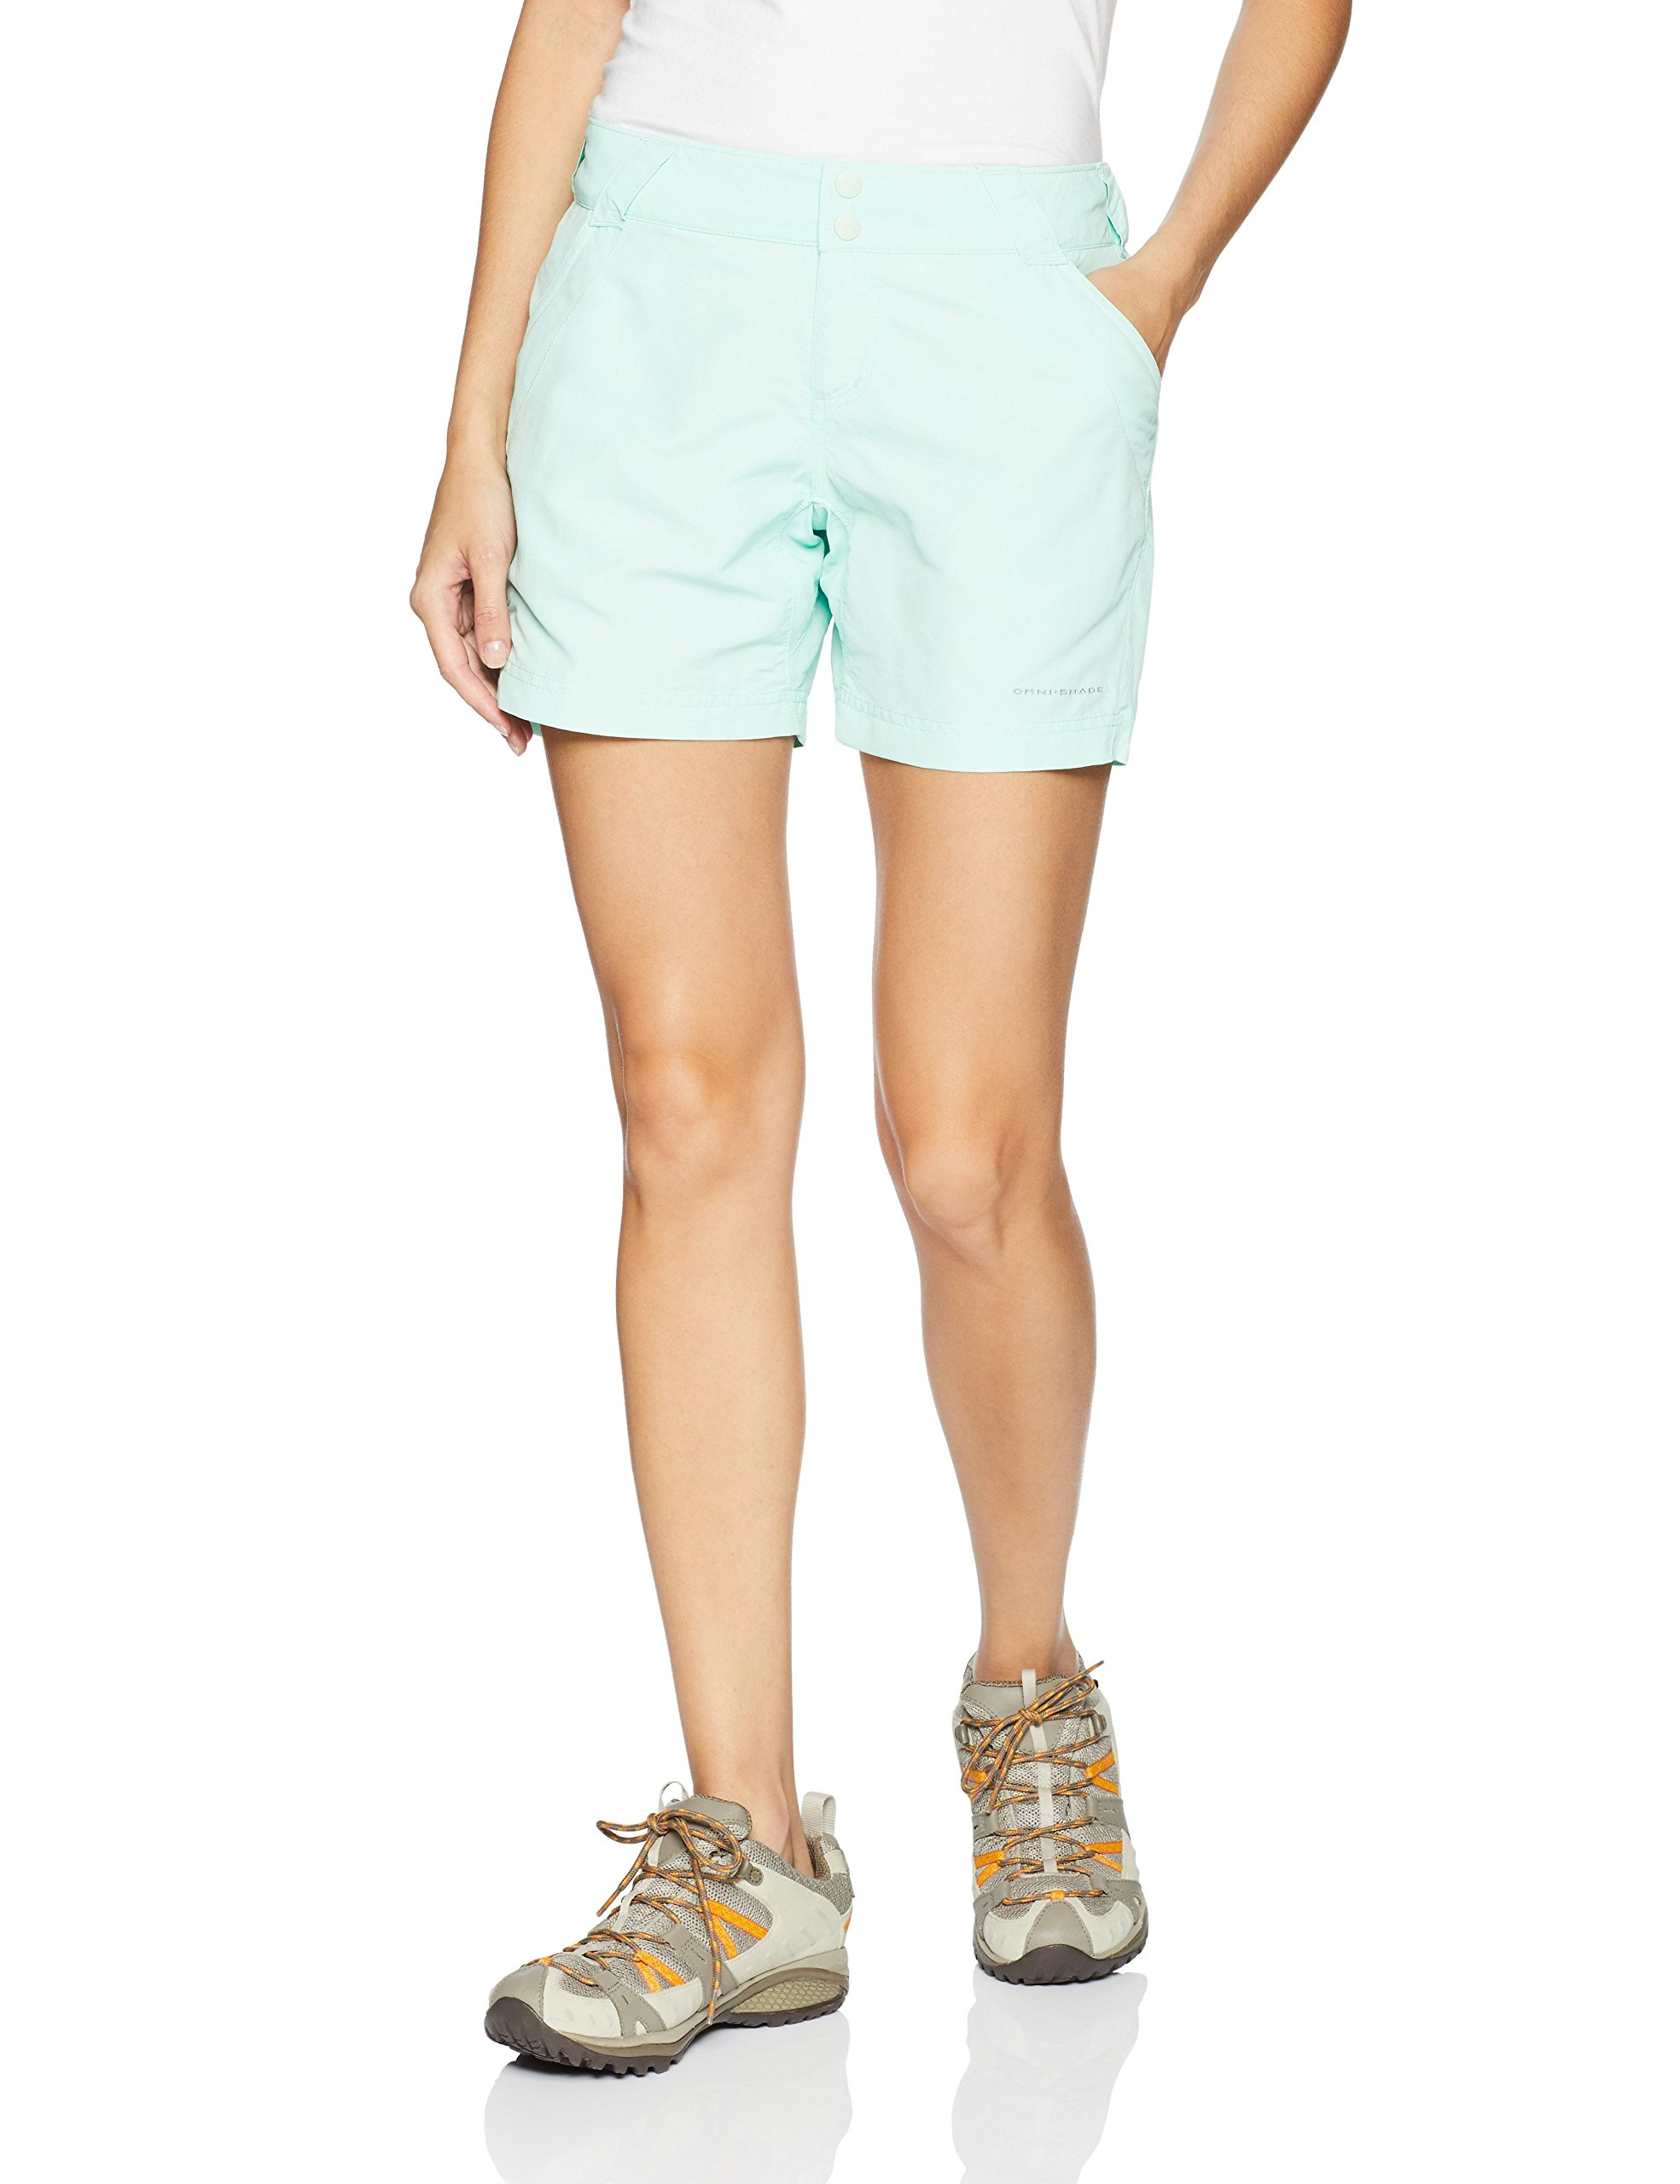 Columbia Women's Coral Point II Short, UV Sun Protection, Moisture Wicking Fabric, Sea Ice, X-Large x 6'' Inseam by Columbia